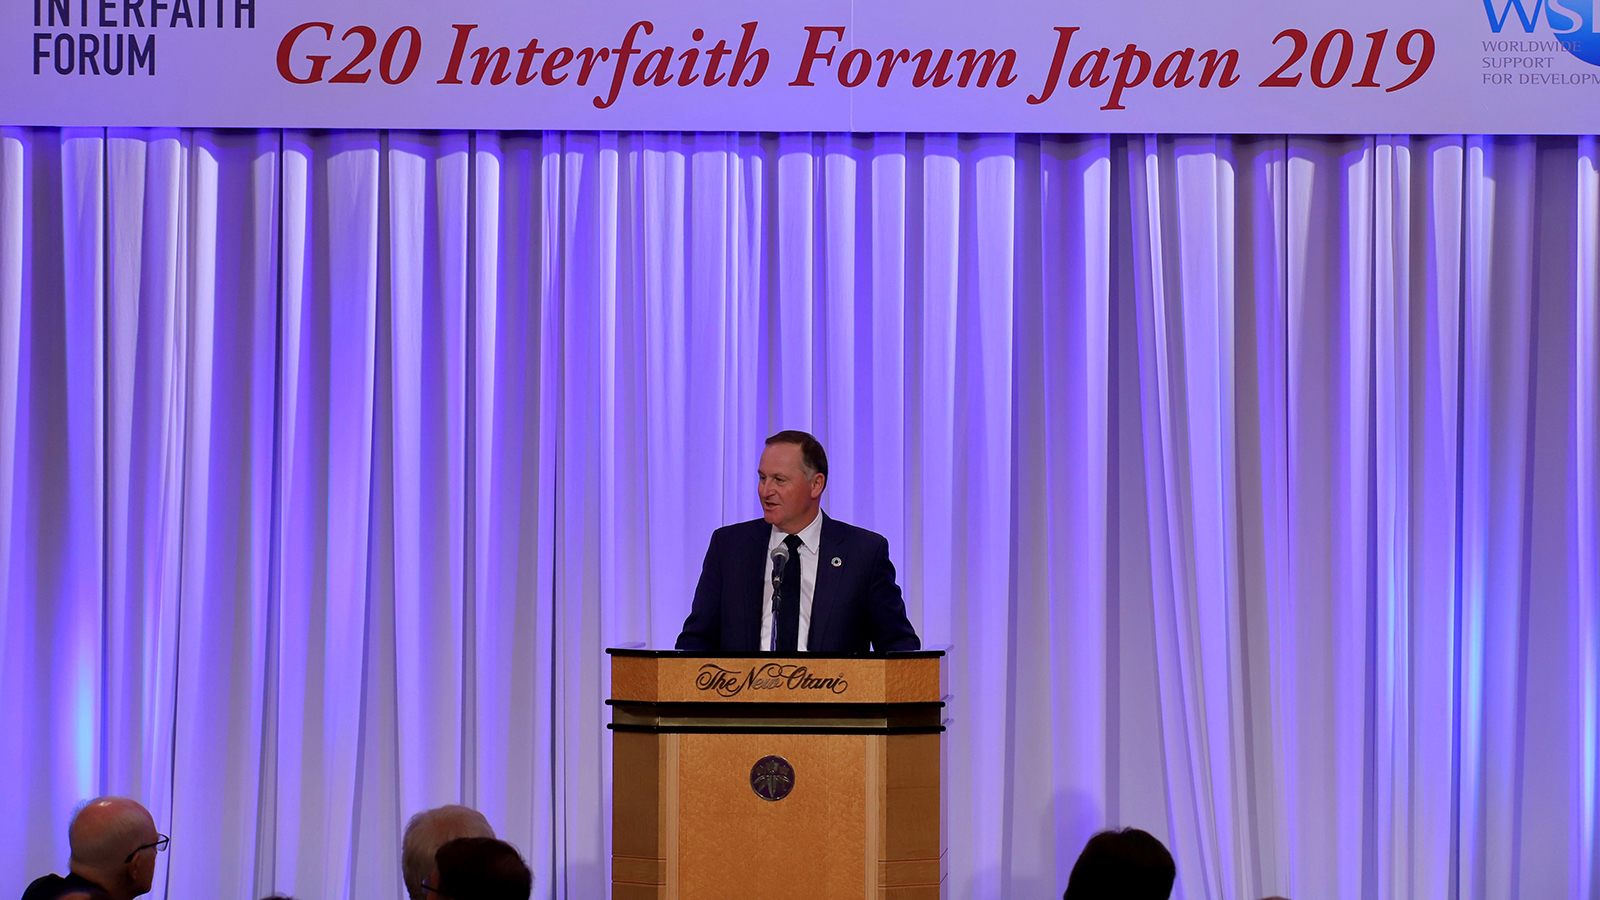 Rt. Hon. David Cameron, former prime minister of the United Kingdom, addresses the forum during a dinner reception.